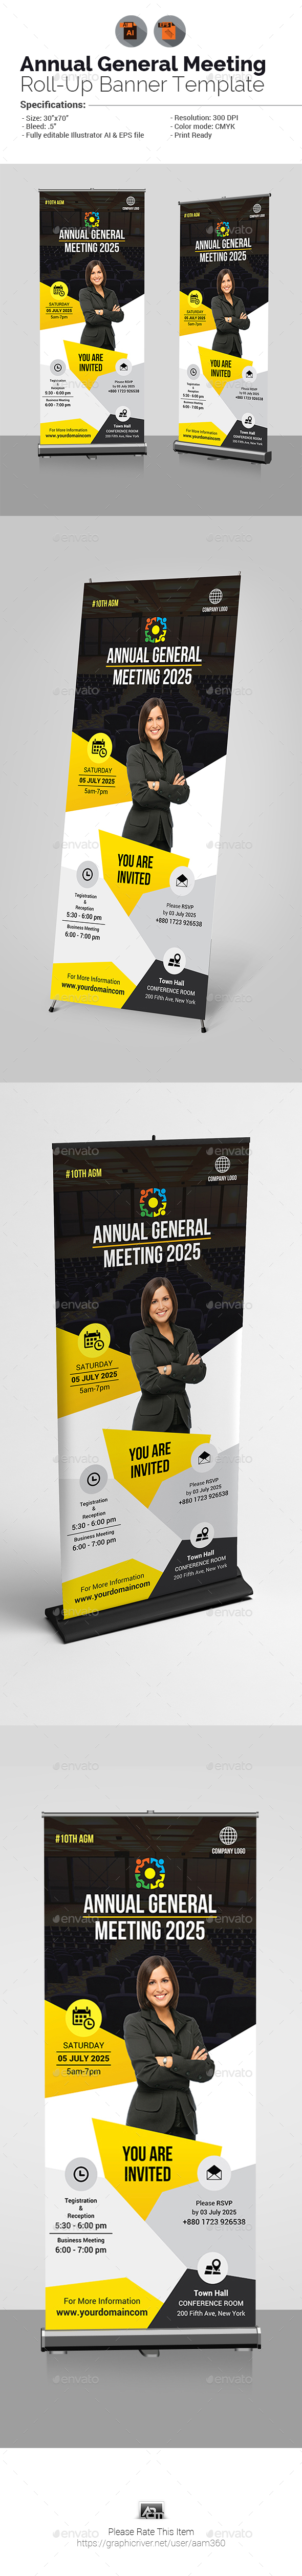 Annual General Meeting Roll-Up Banner - Signage Print Templates